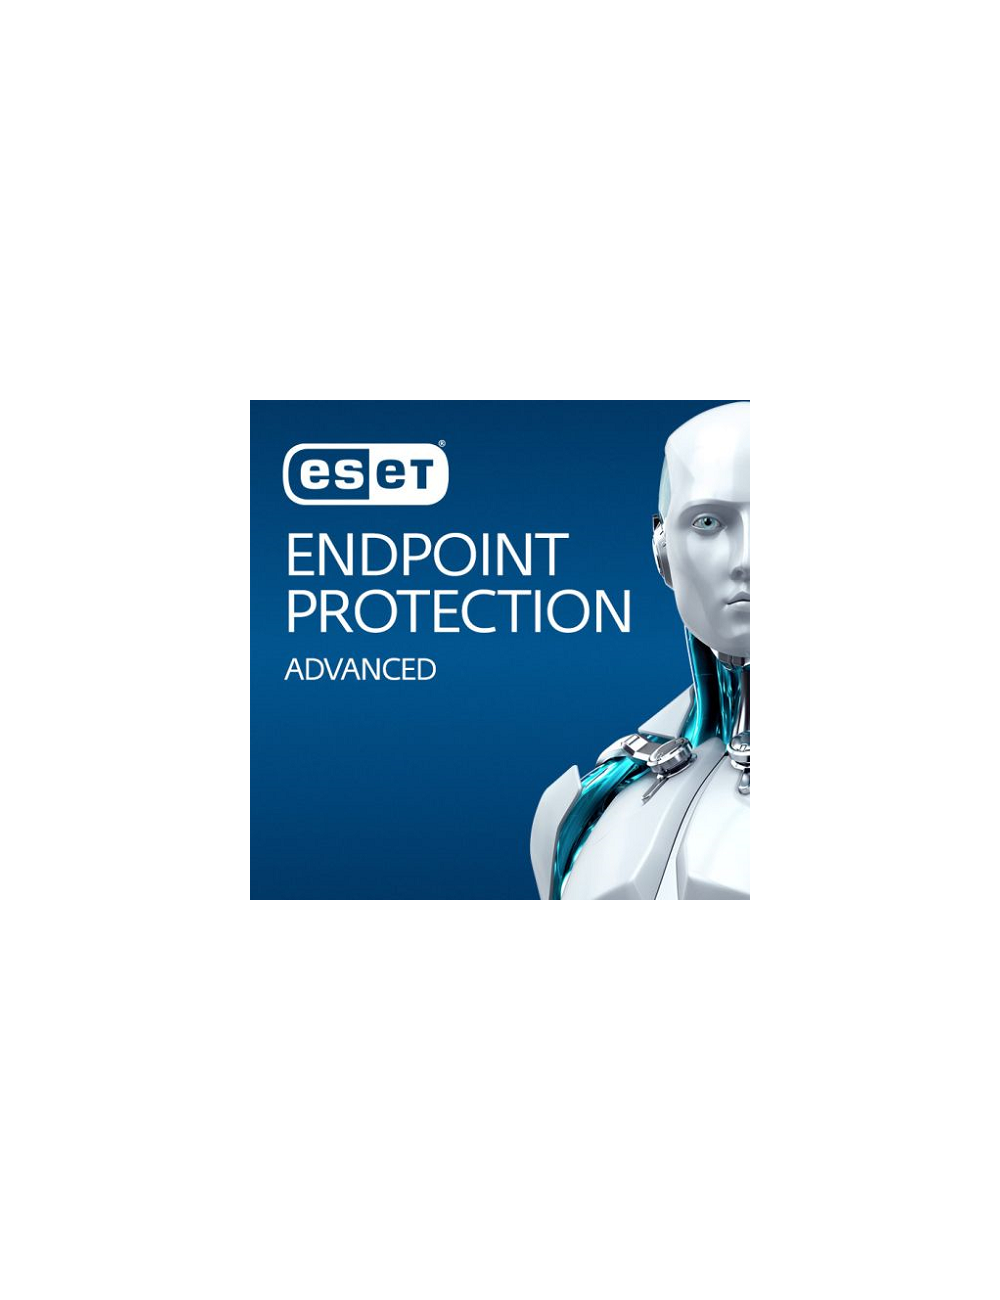 ESET Endpoint Protection Advanced (1-10 devices) -  License 5 devices - 1 year